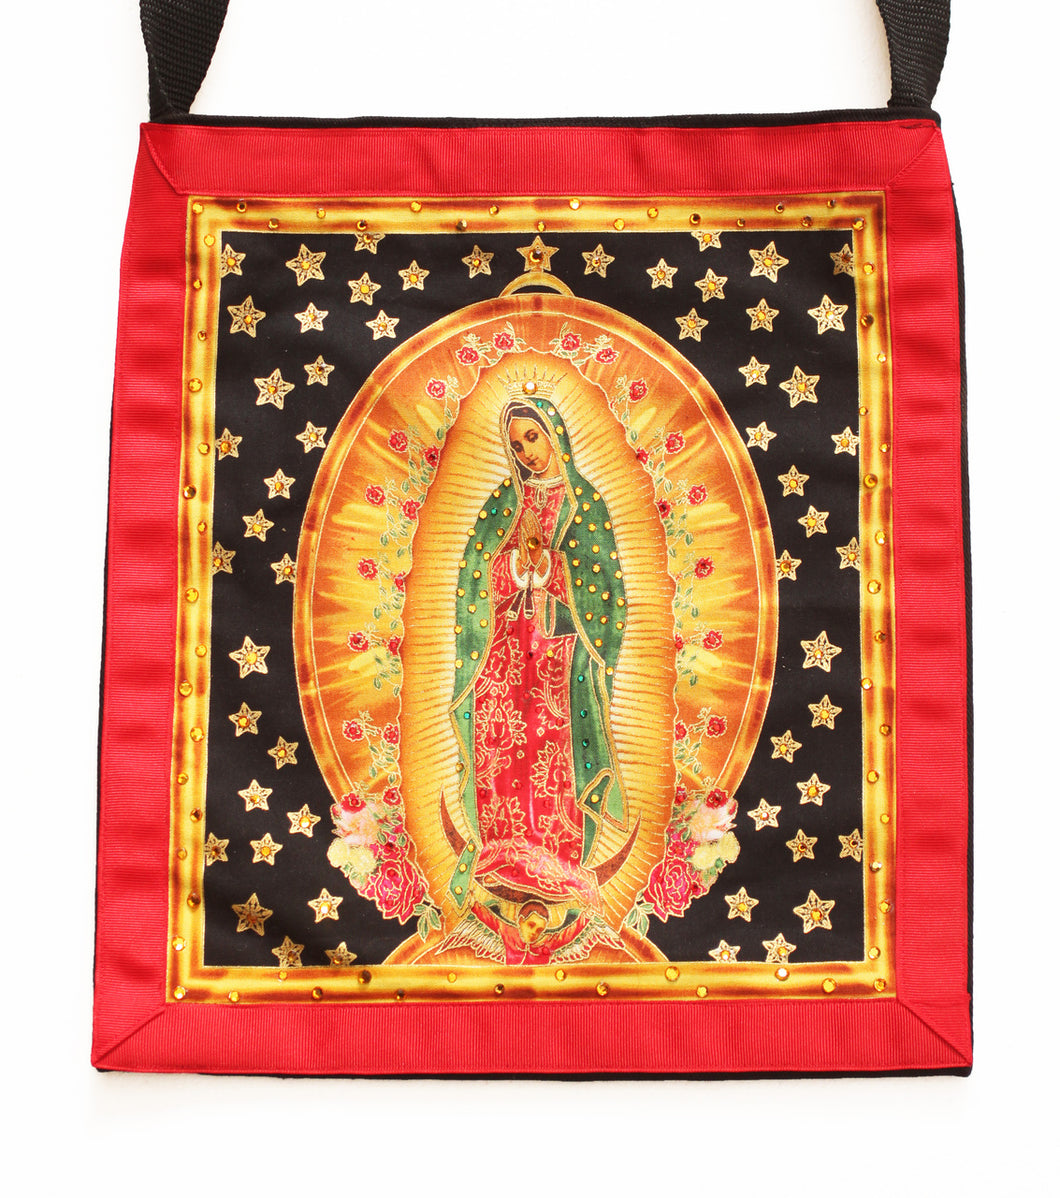 Our Lady The Virgin of Guadalupe with Stars Cotton Black Denim Tote - Hand-Embellished with Crystals